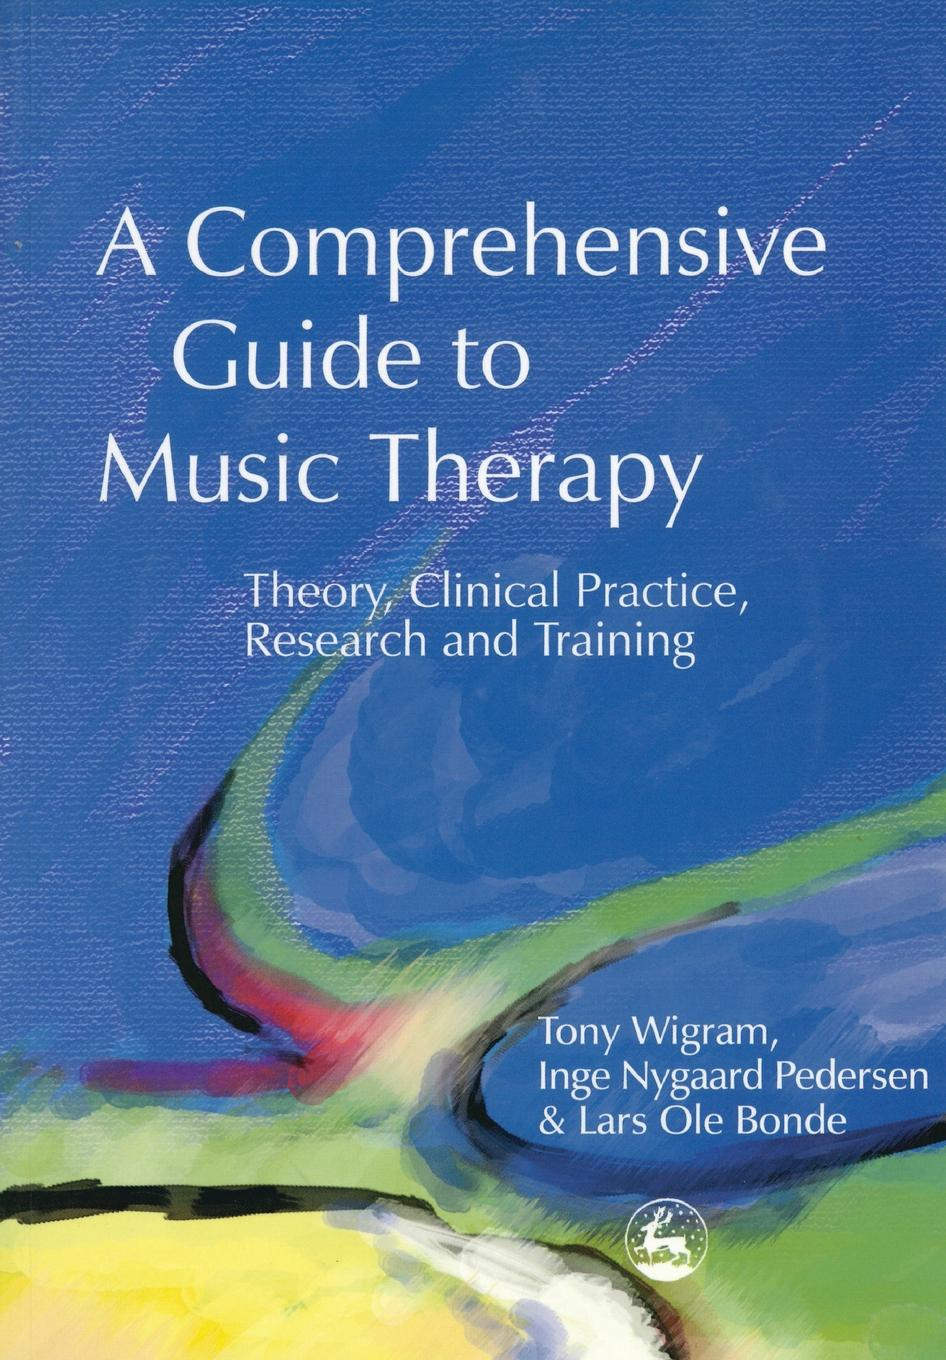 Tony Wigram, Inge Nygaard Pedersen, Lars OLE Bonde A Comprehensive Guide to Music Therapy. Theory, Clinical Practice, Research and Training